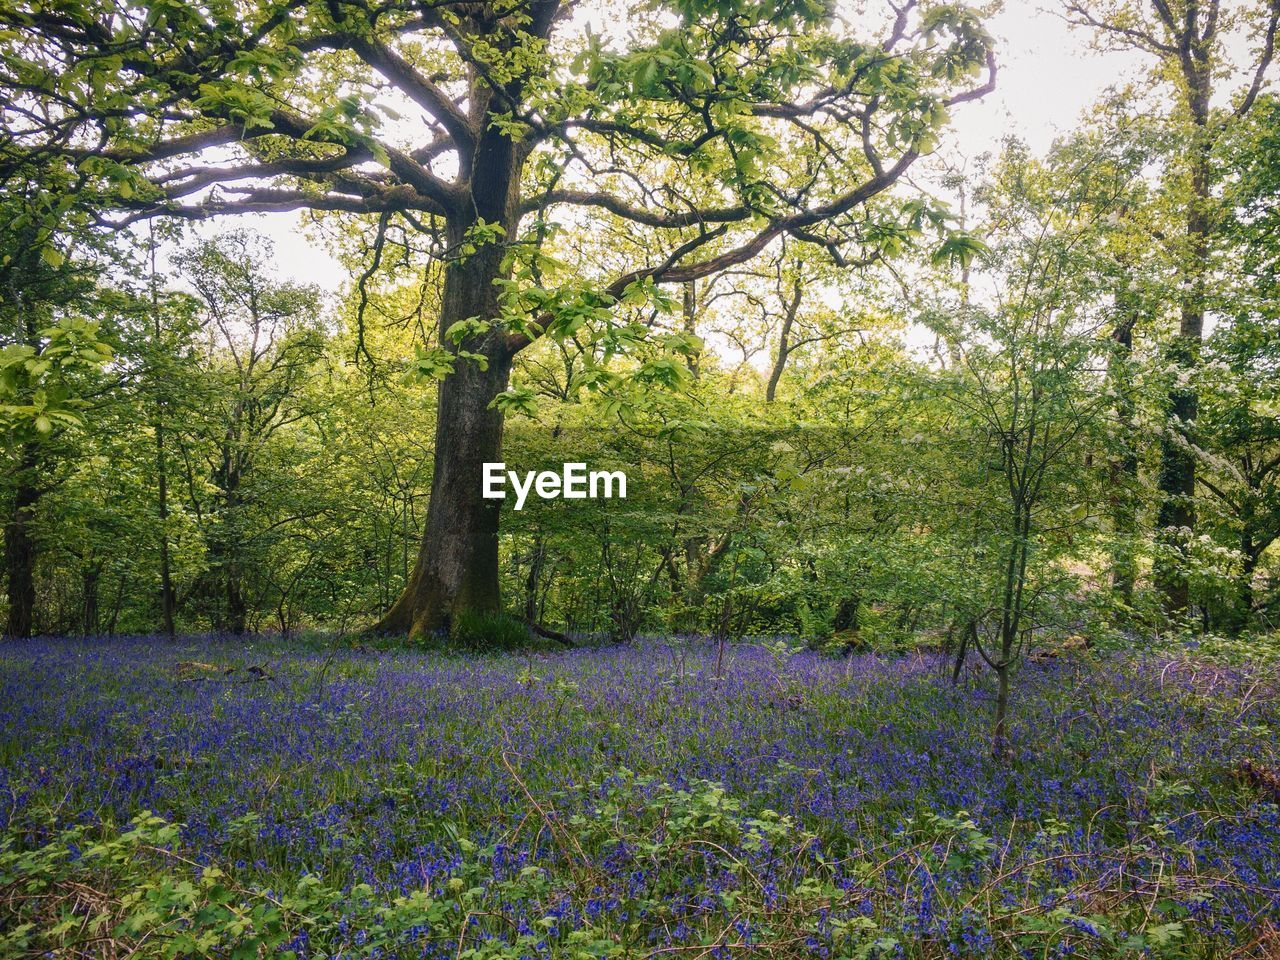 tree, purple, nature, flower, growth, no people, outdoors, beauty in nature, scenics, tranquility, landscape, day, tranquil scene, plant, green color, freshness, flower head, sky, crocus